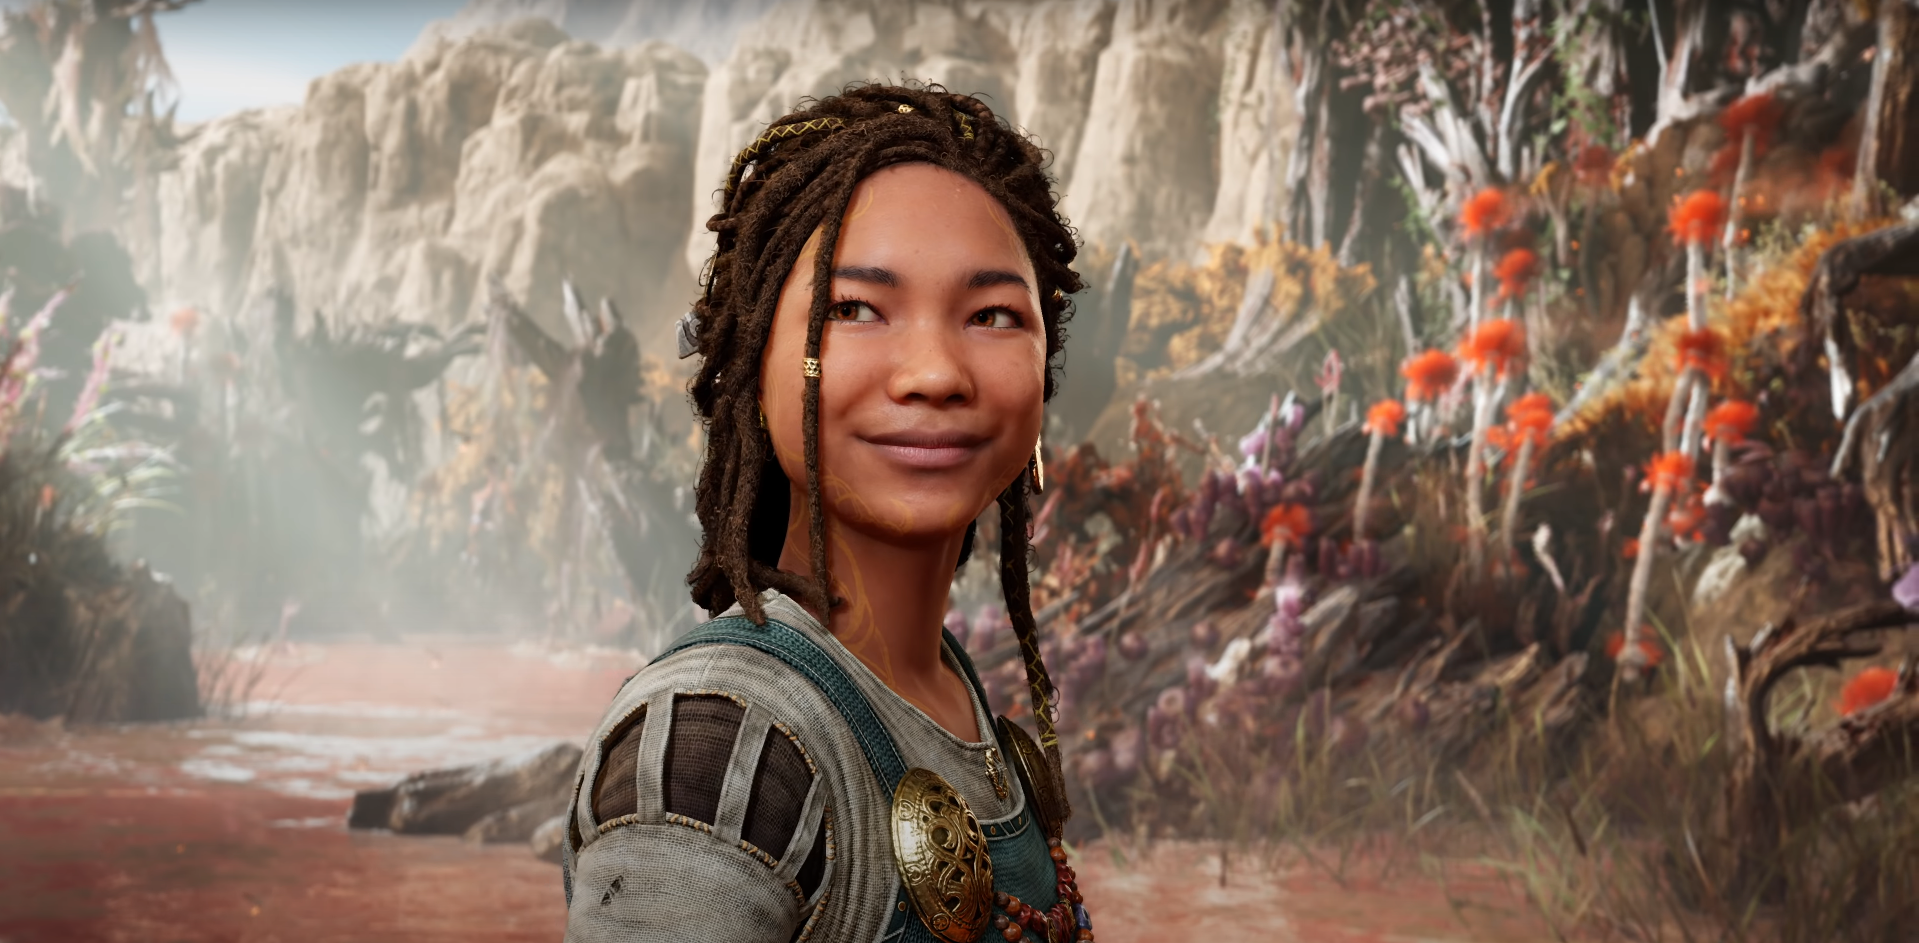 'God of War: Ragnarok' Shows How Games Can Get Black Hair Right